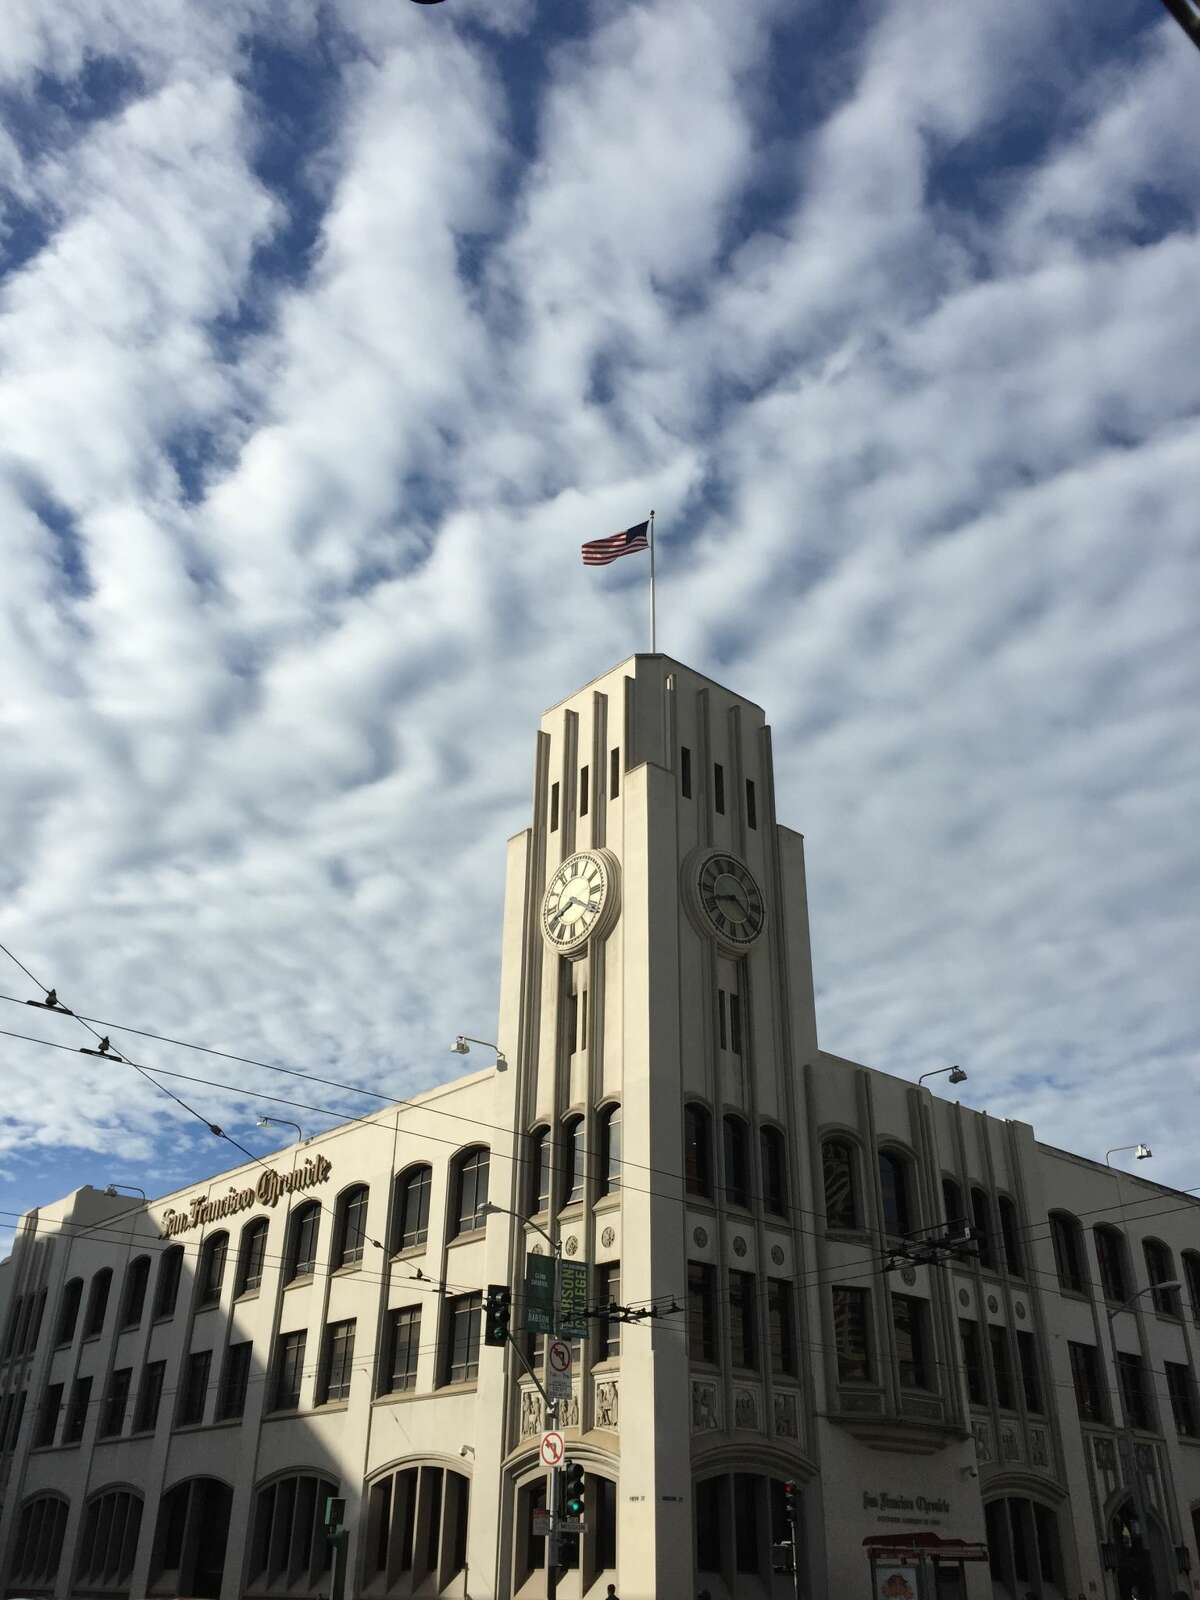 An amalgamation of altostratus and altocumulus clouds in a hypnotizing pattern over the San Francisco Chronicle building at 901 Mission St.